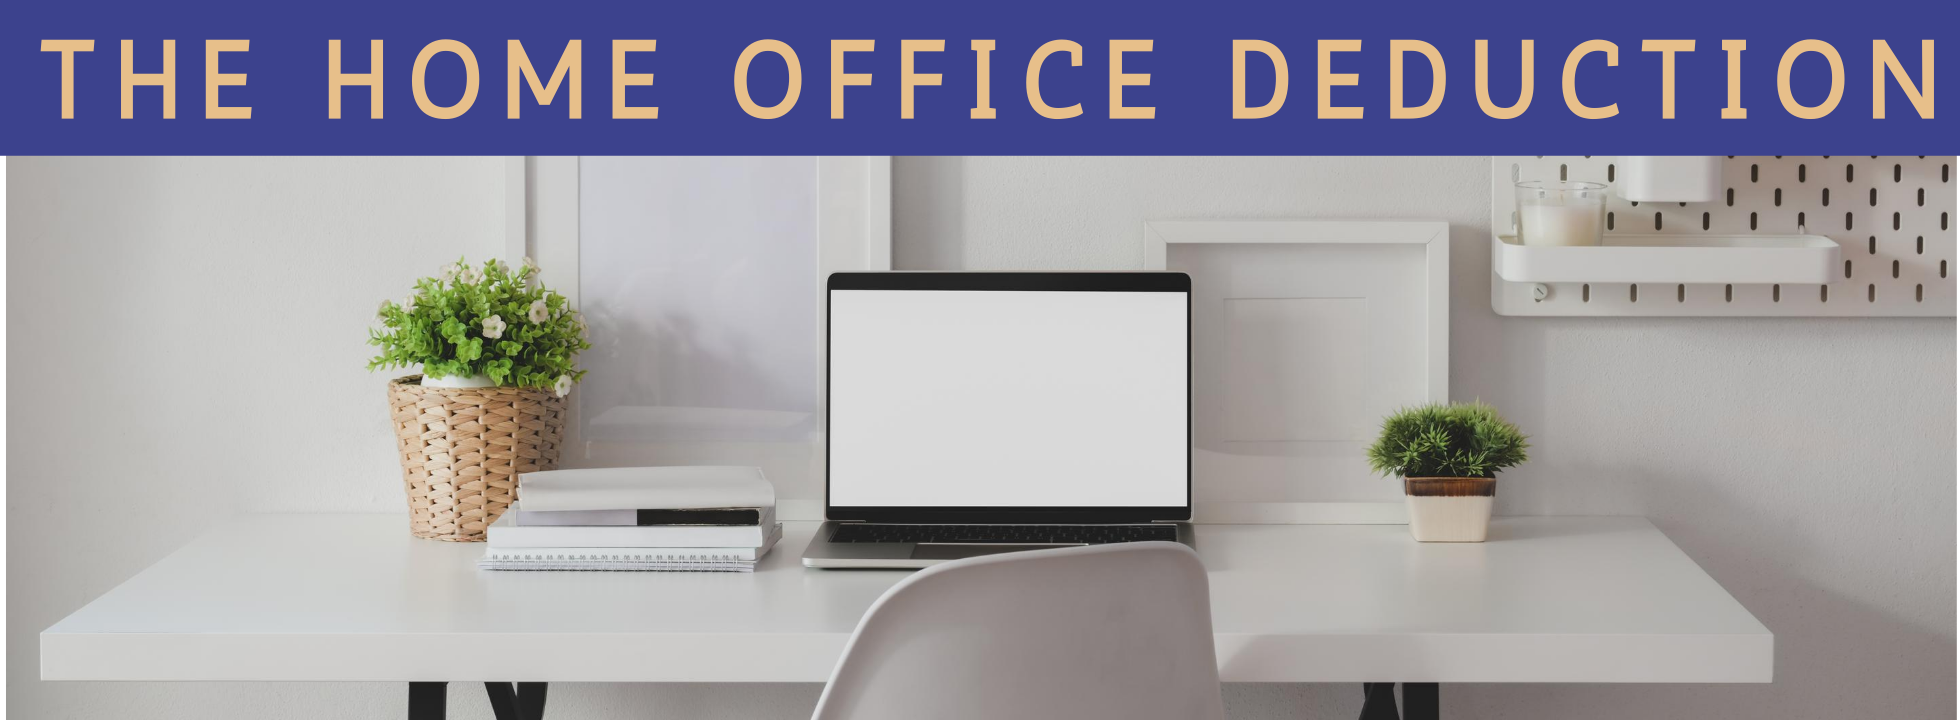 THE HOME OFFICE DEDUCTION